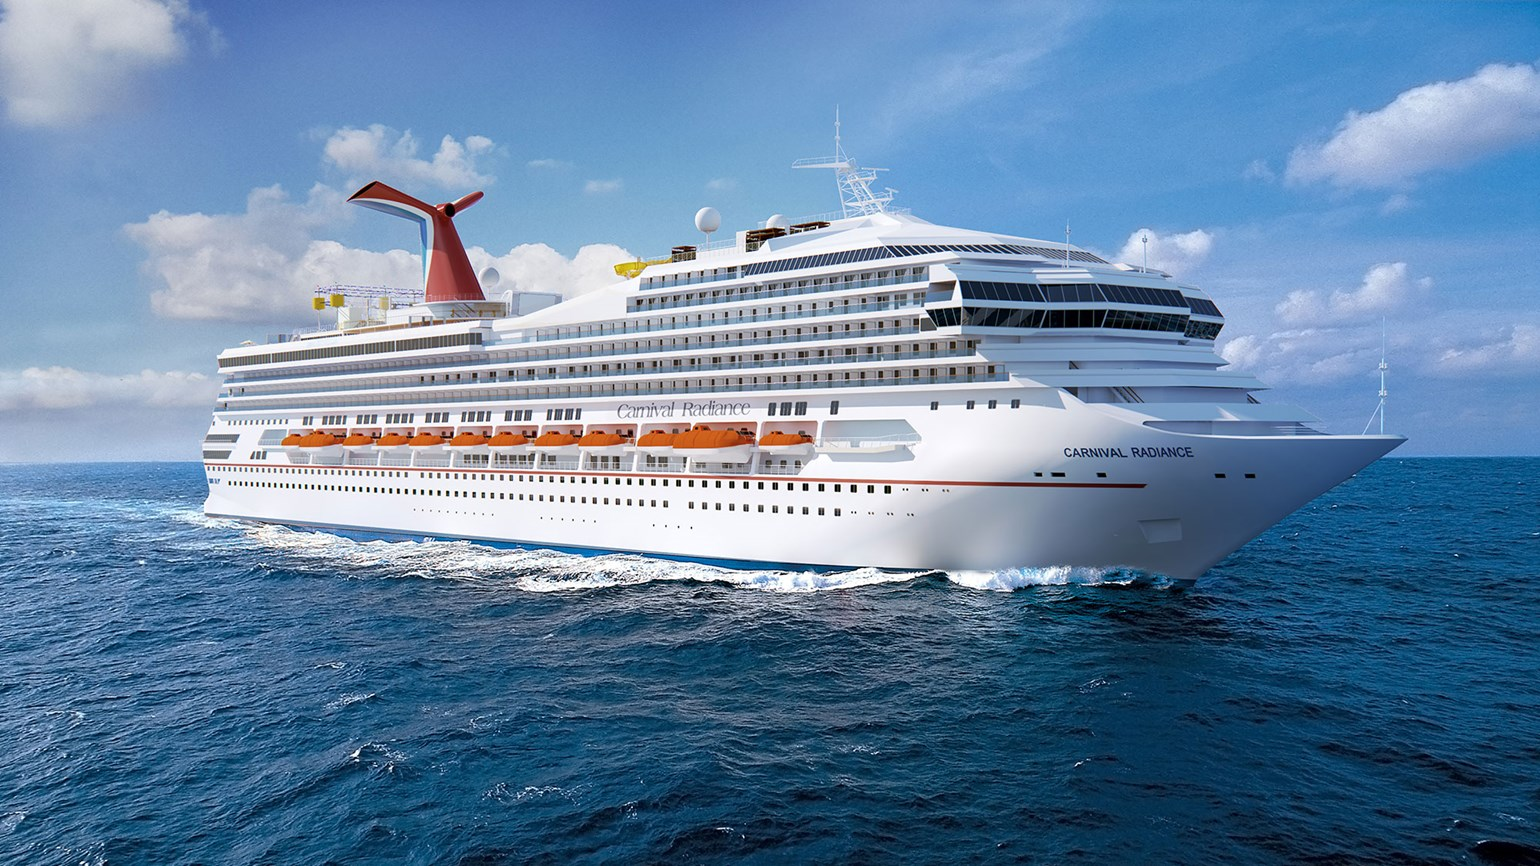 Carnival Victory to be renamed Radiance after $200M overhaul